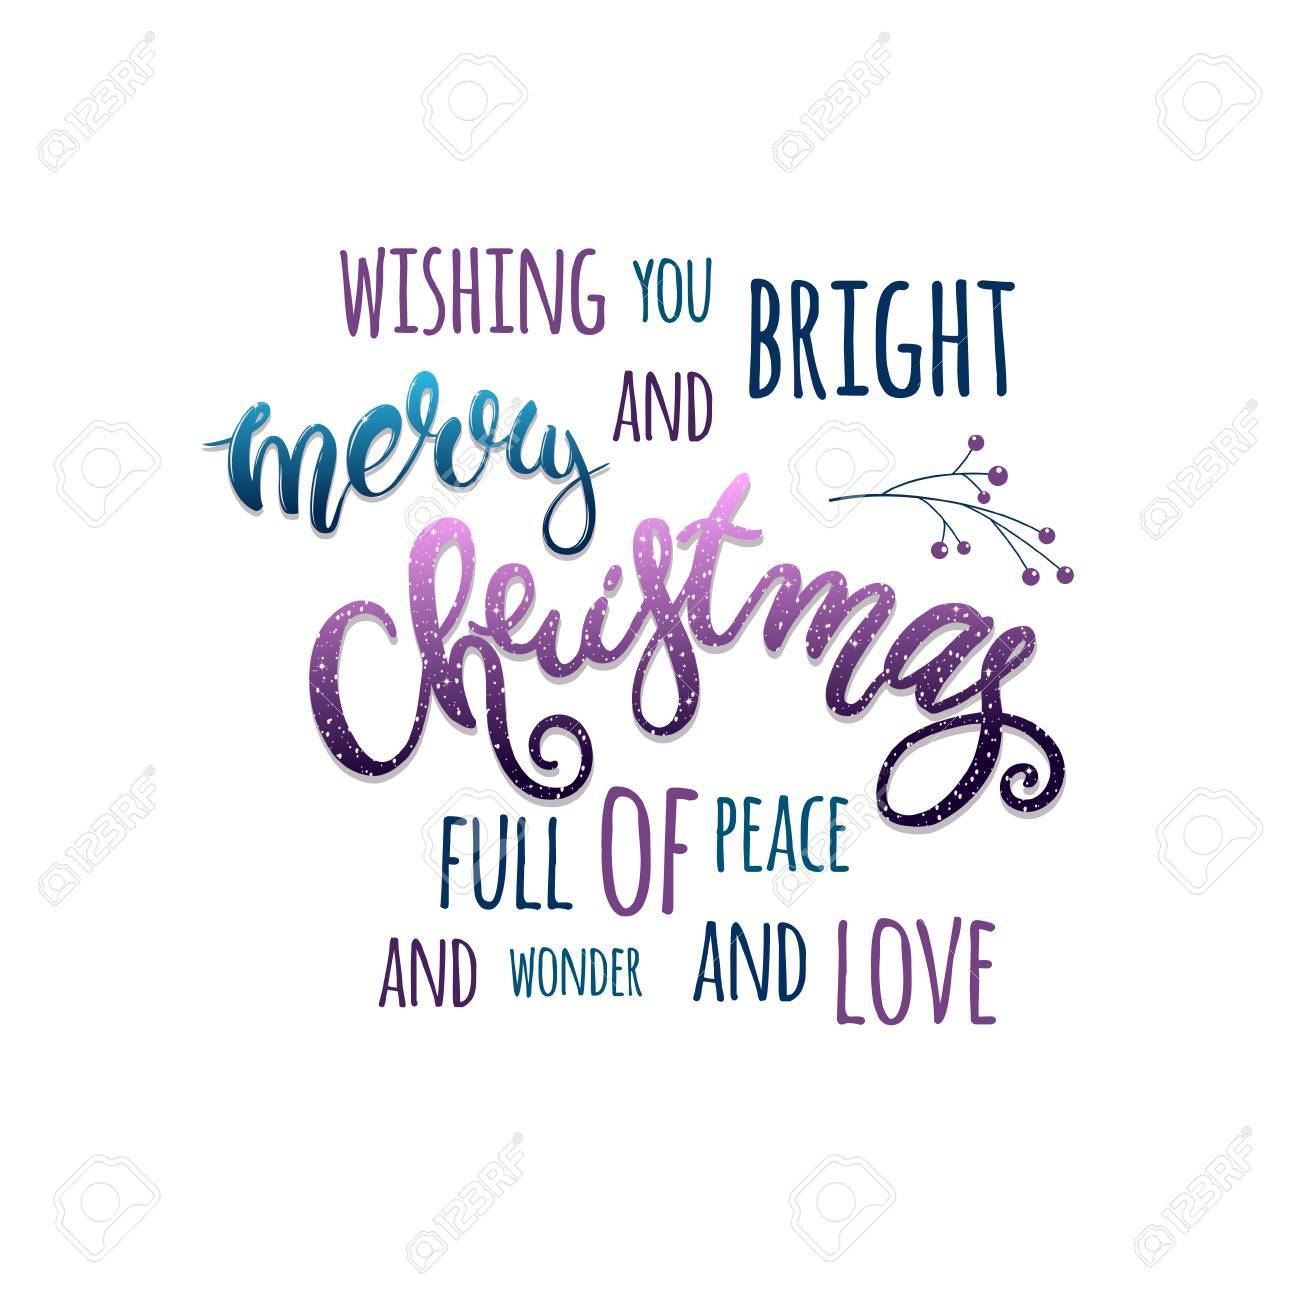 wishing you bright and merry christmas full of peace and wonder